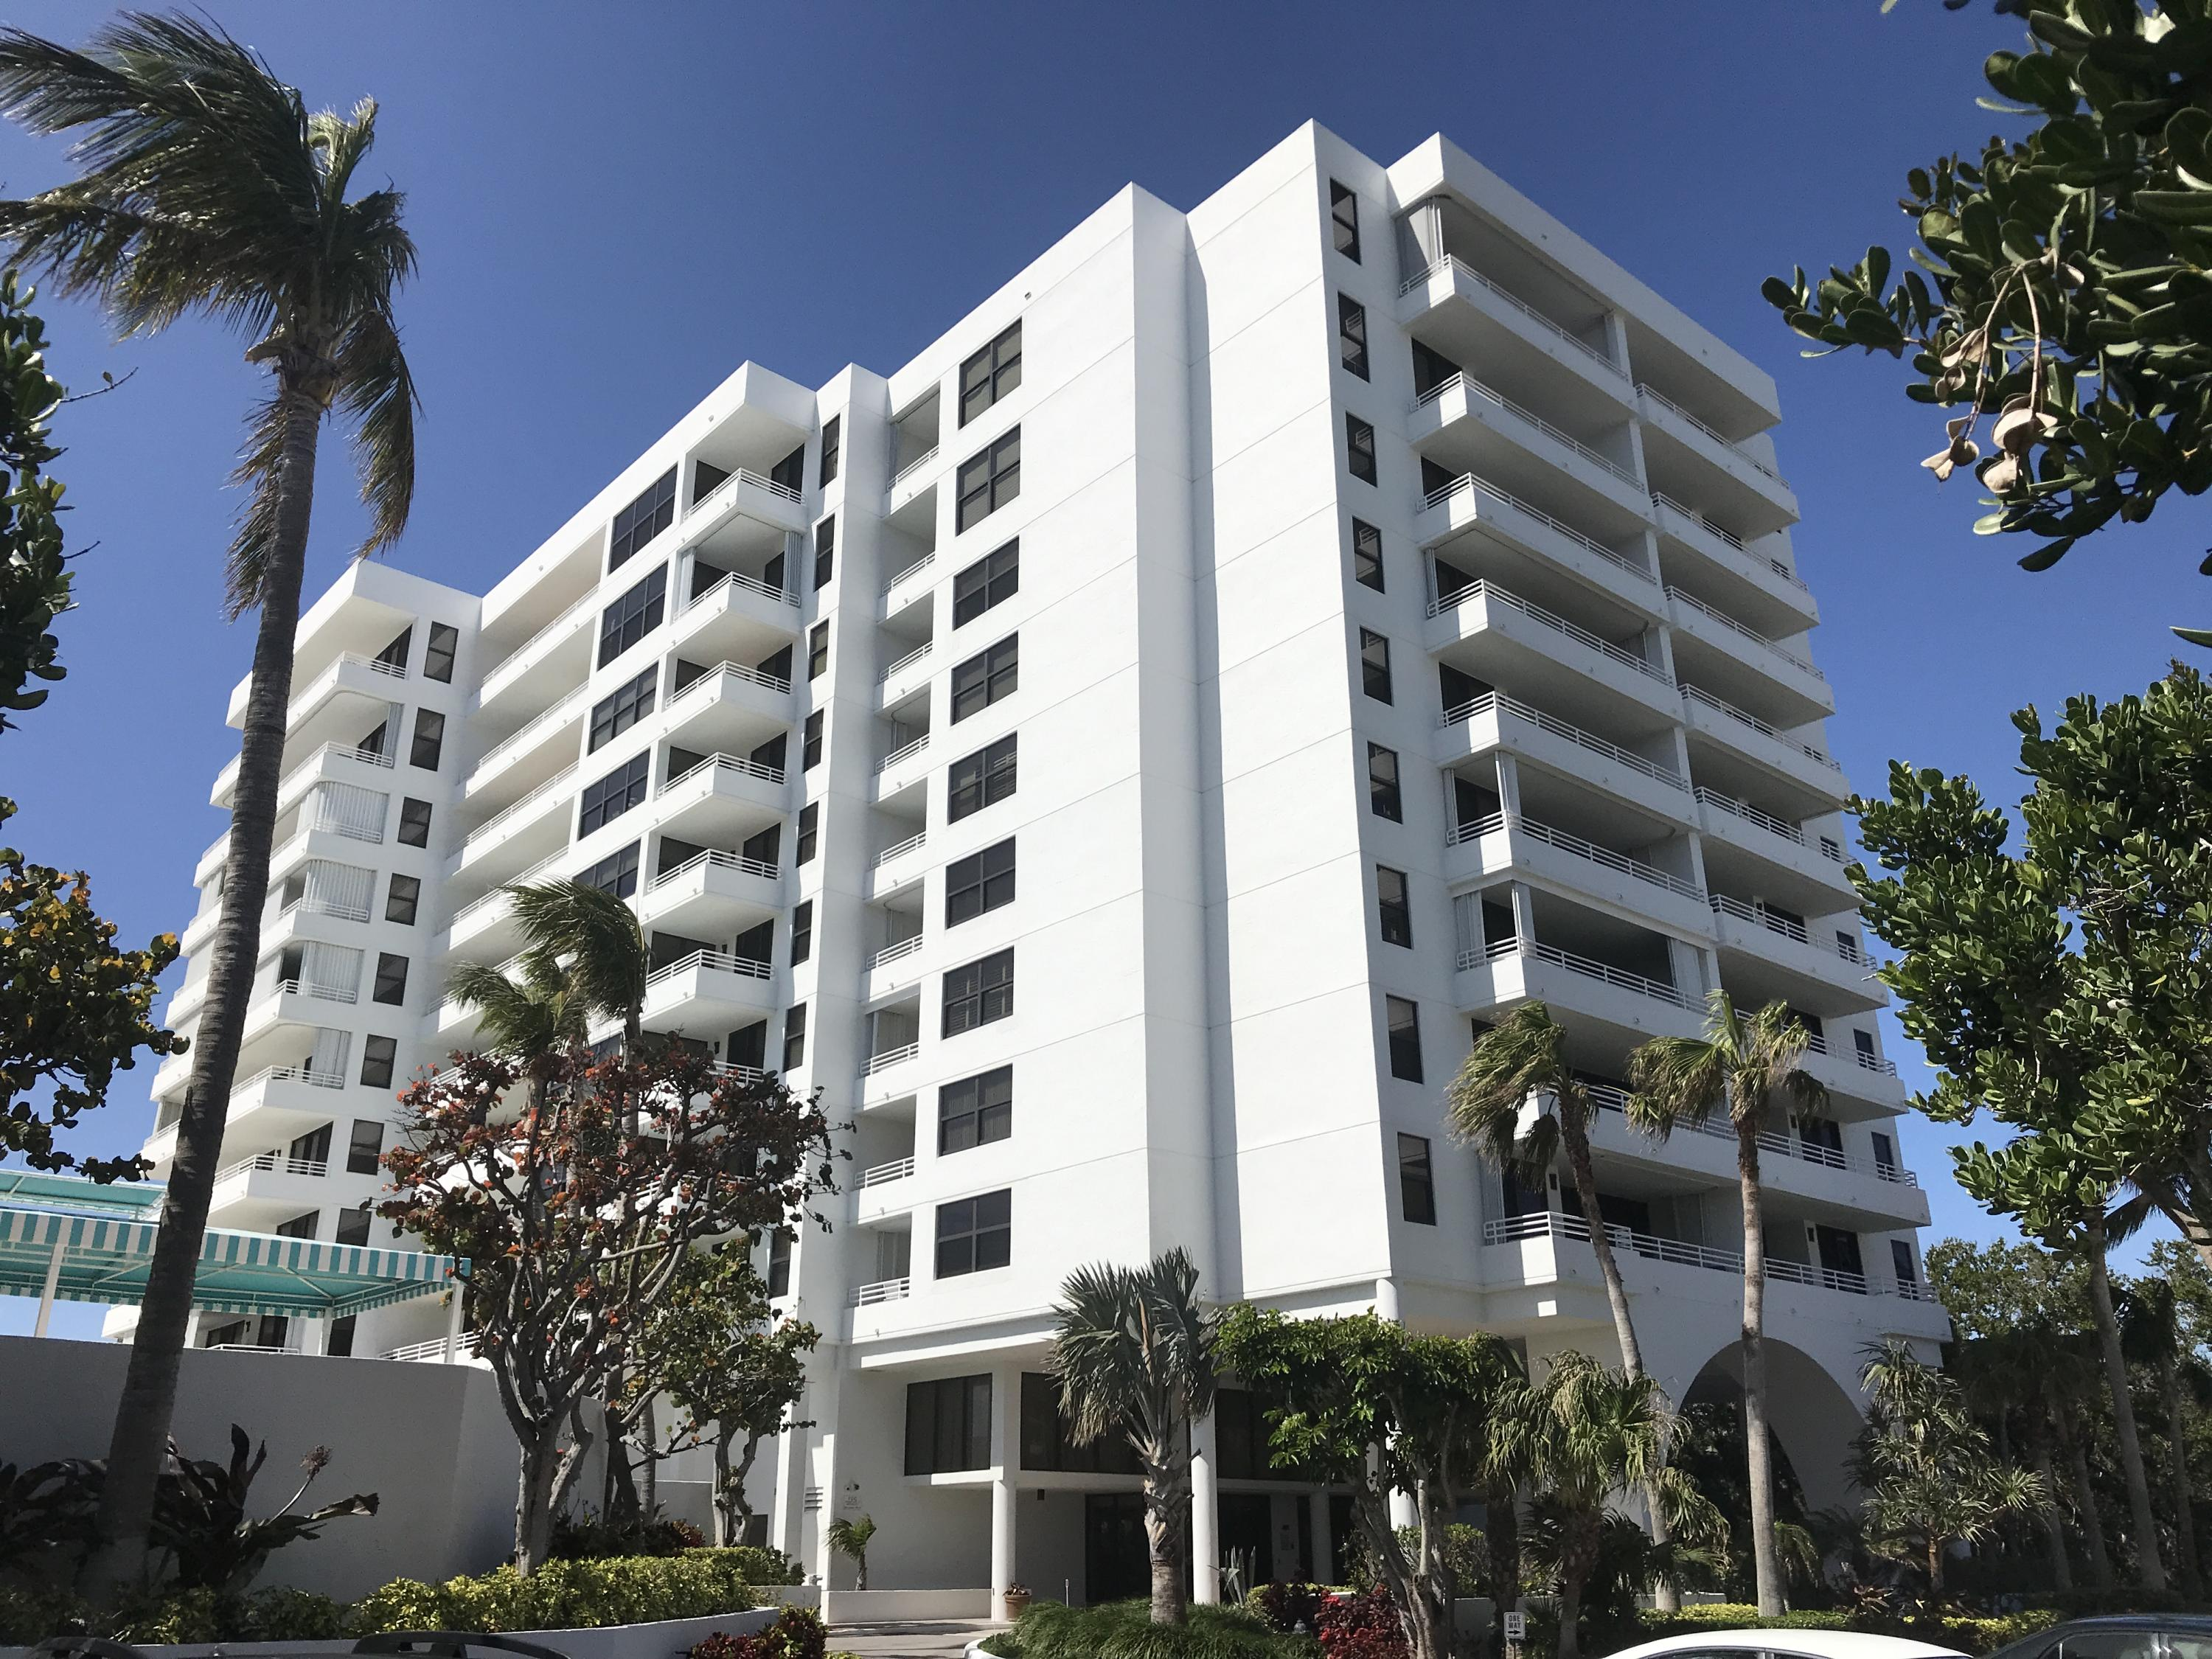 3450 Ocean Boulevard, Highland Beach, Florida 33487, 3 Bedrooms Bedrooms, ,2 BathroomsBathrooms,Condo/Coop,For Sale,Ocean,4,RX-10408713